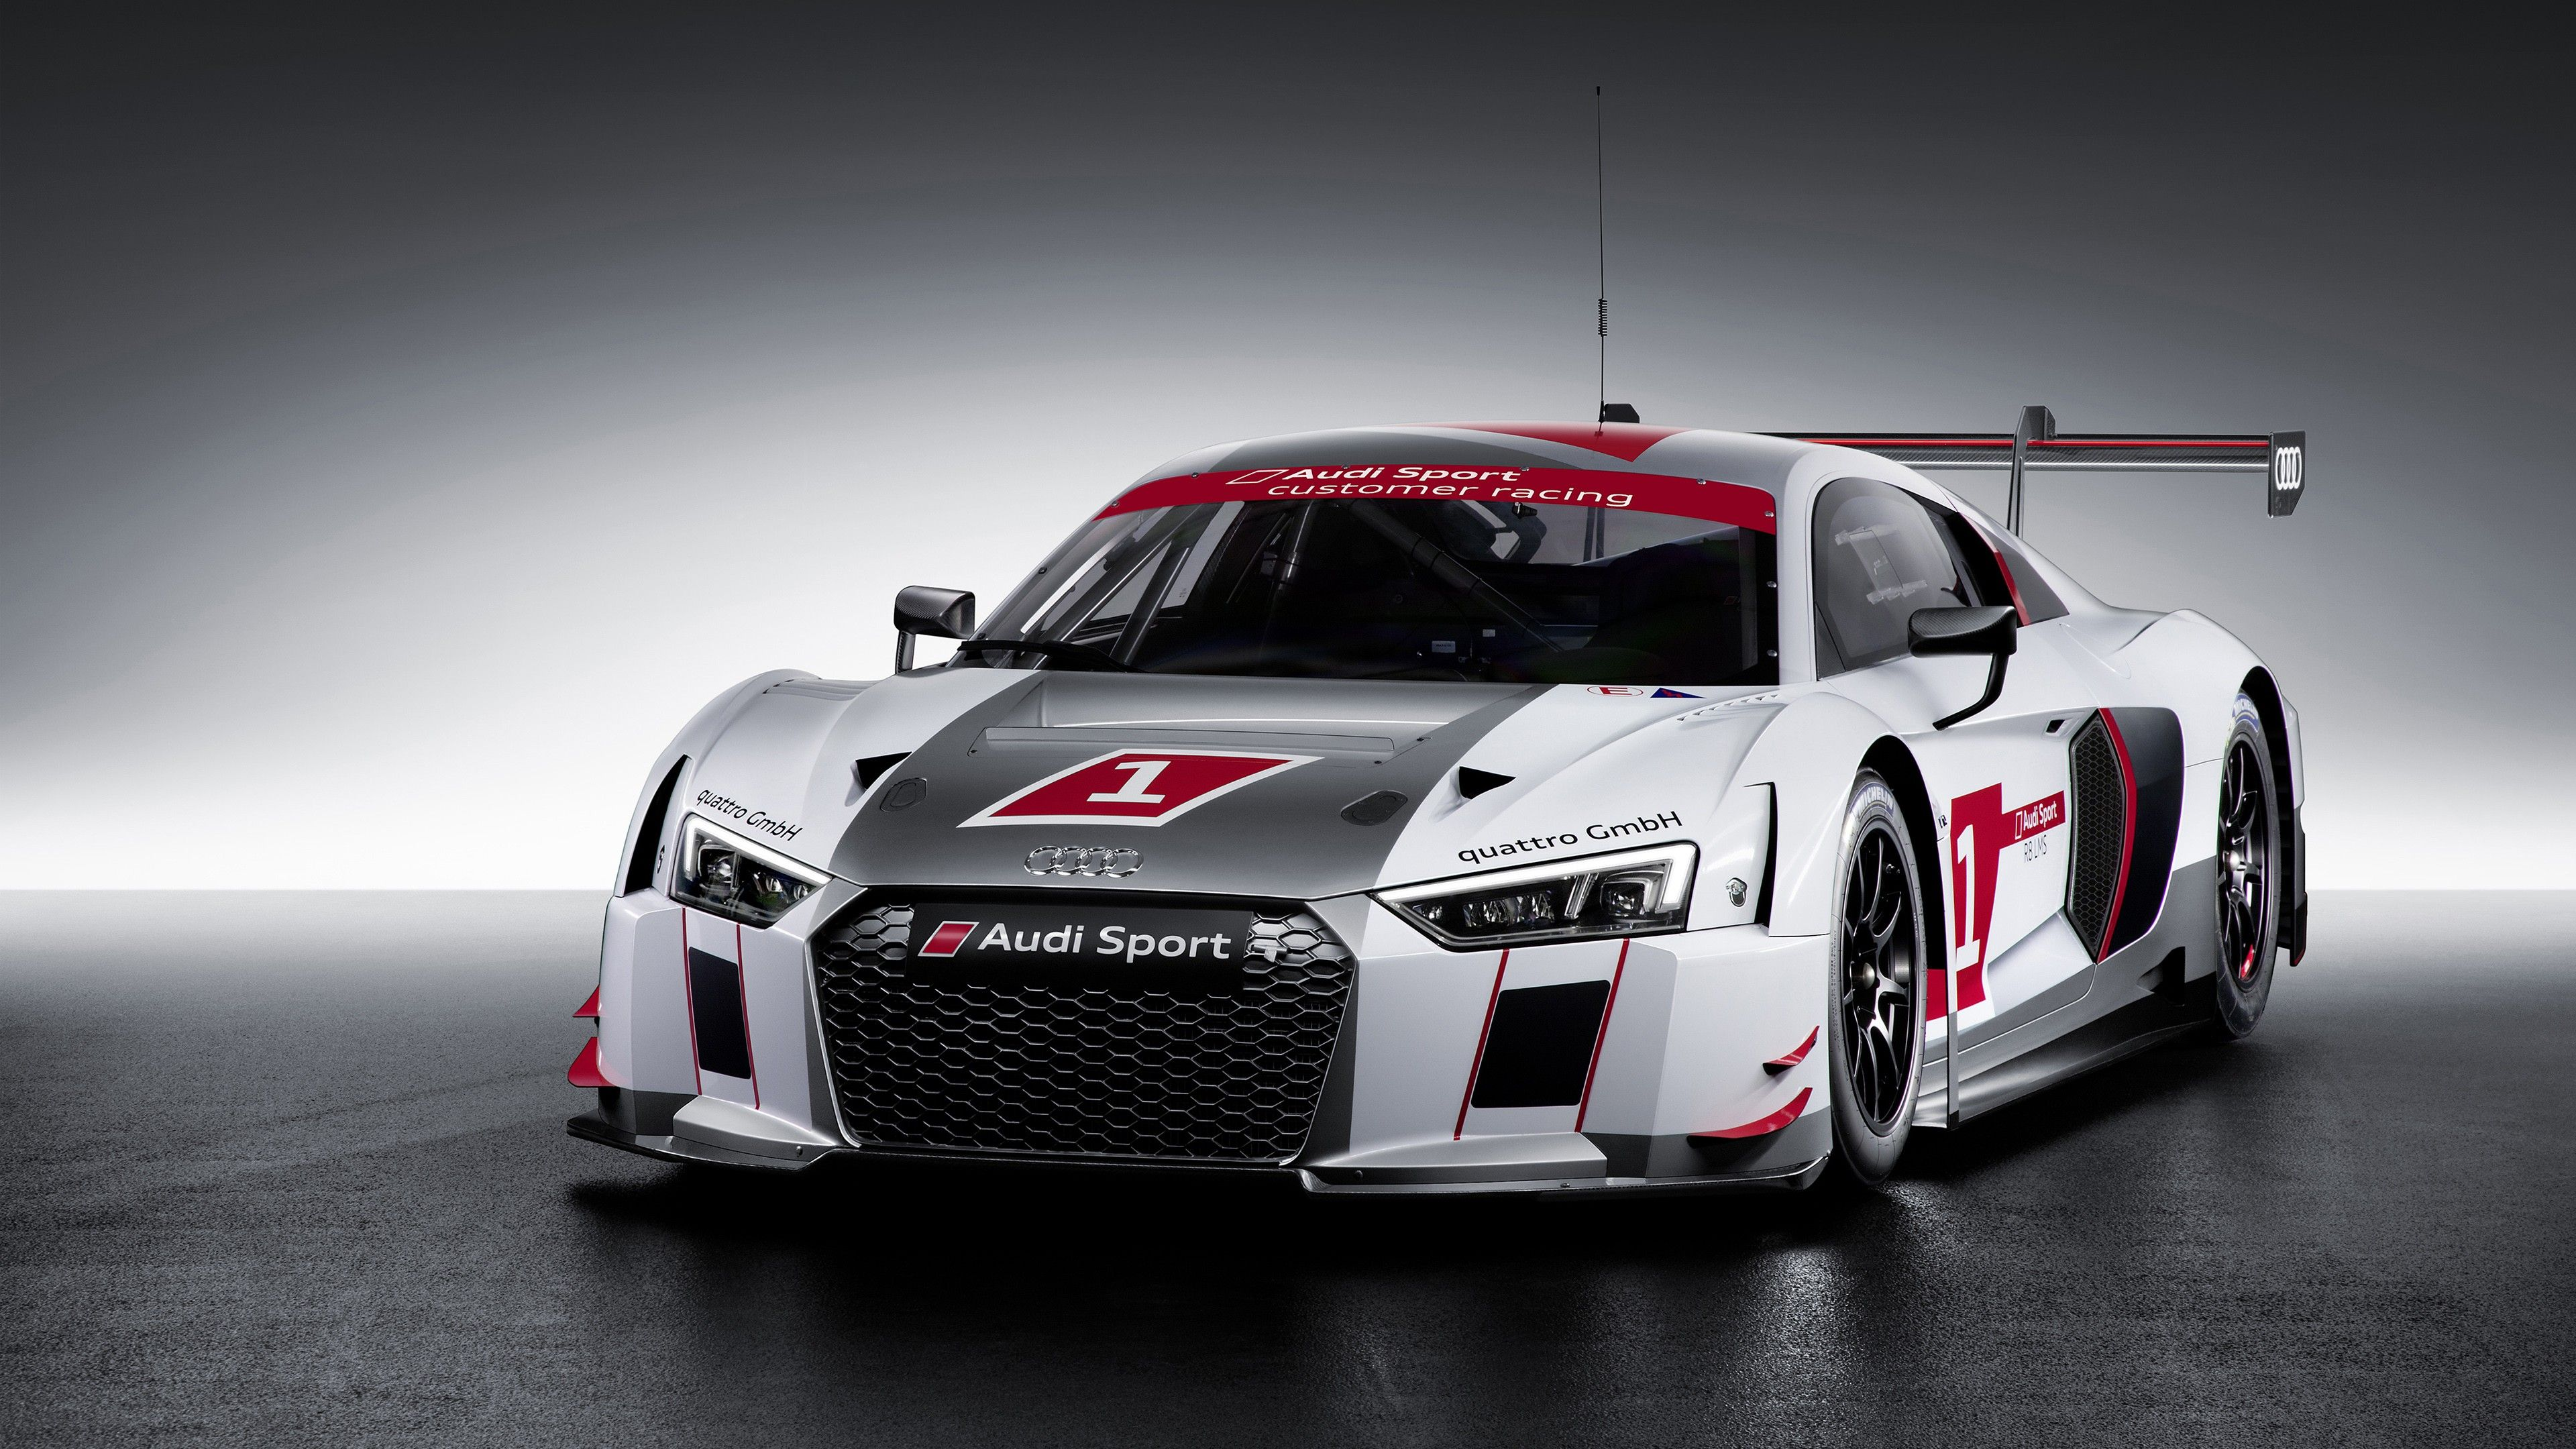 Audi Wallpaper, Audi HD Backgrounds For PC